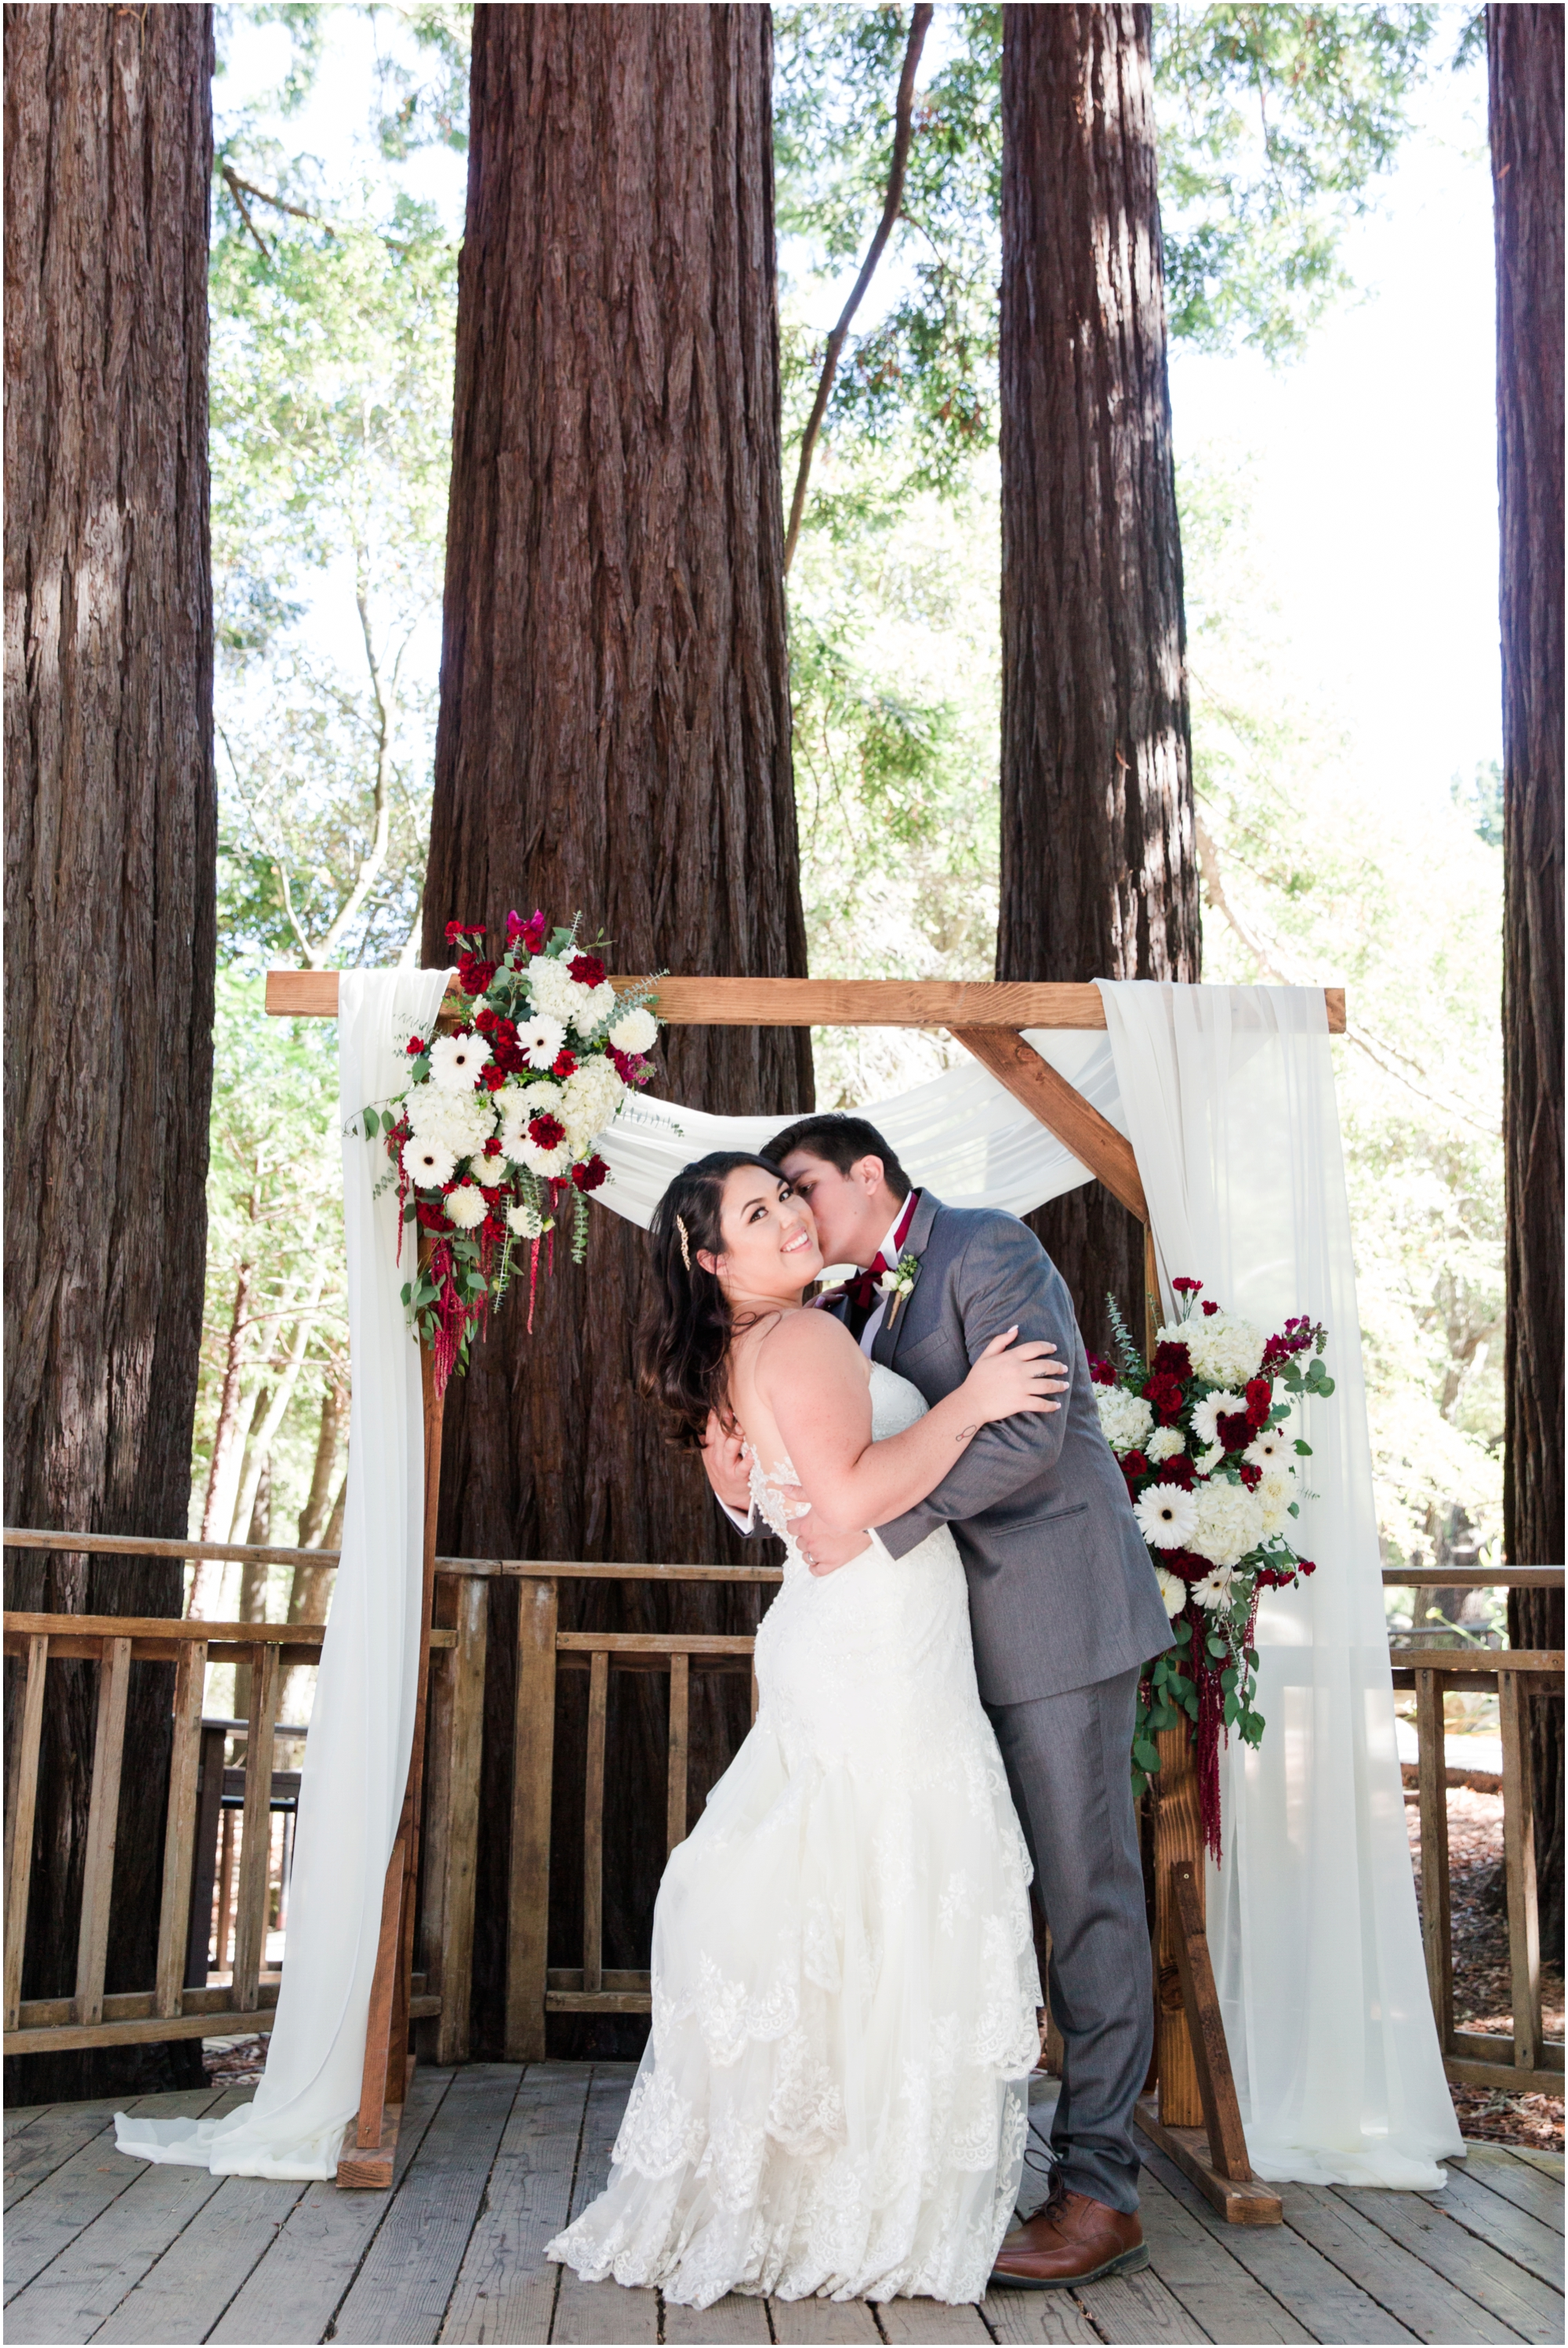 Sanborn Park Saratoga wedding pictures by Briana Calderon Photography_0153.jpg